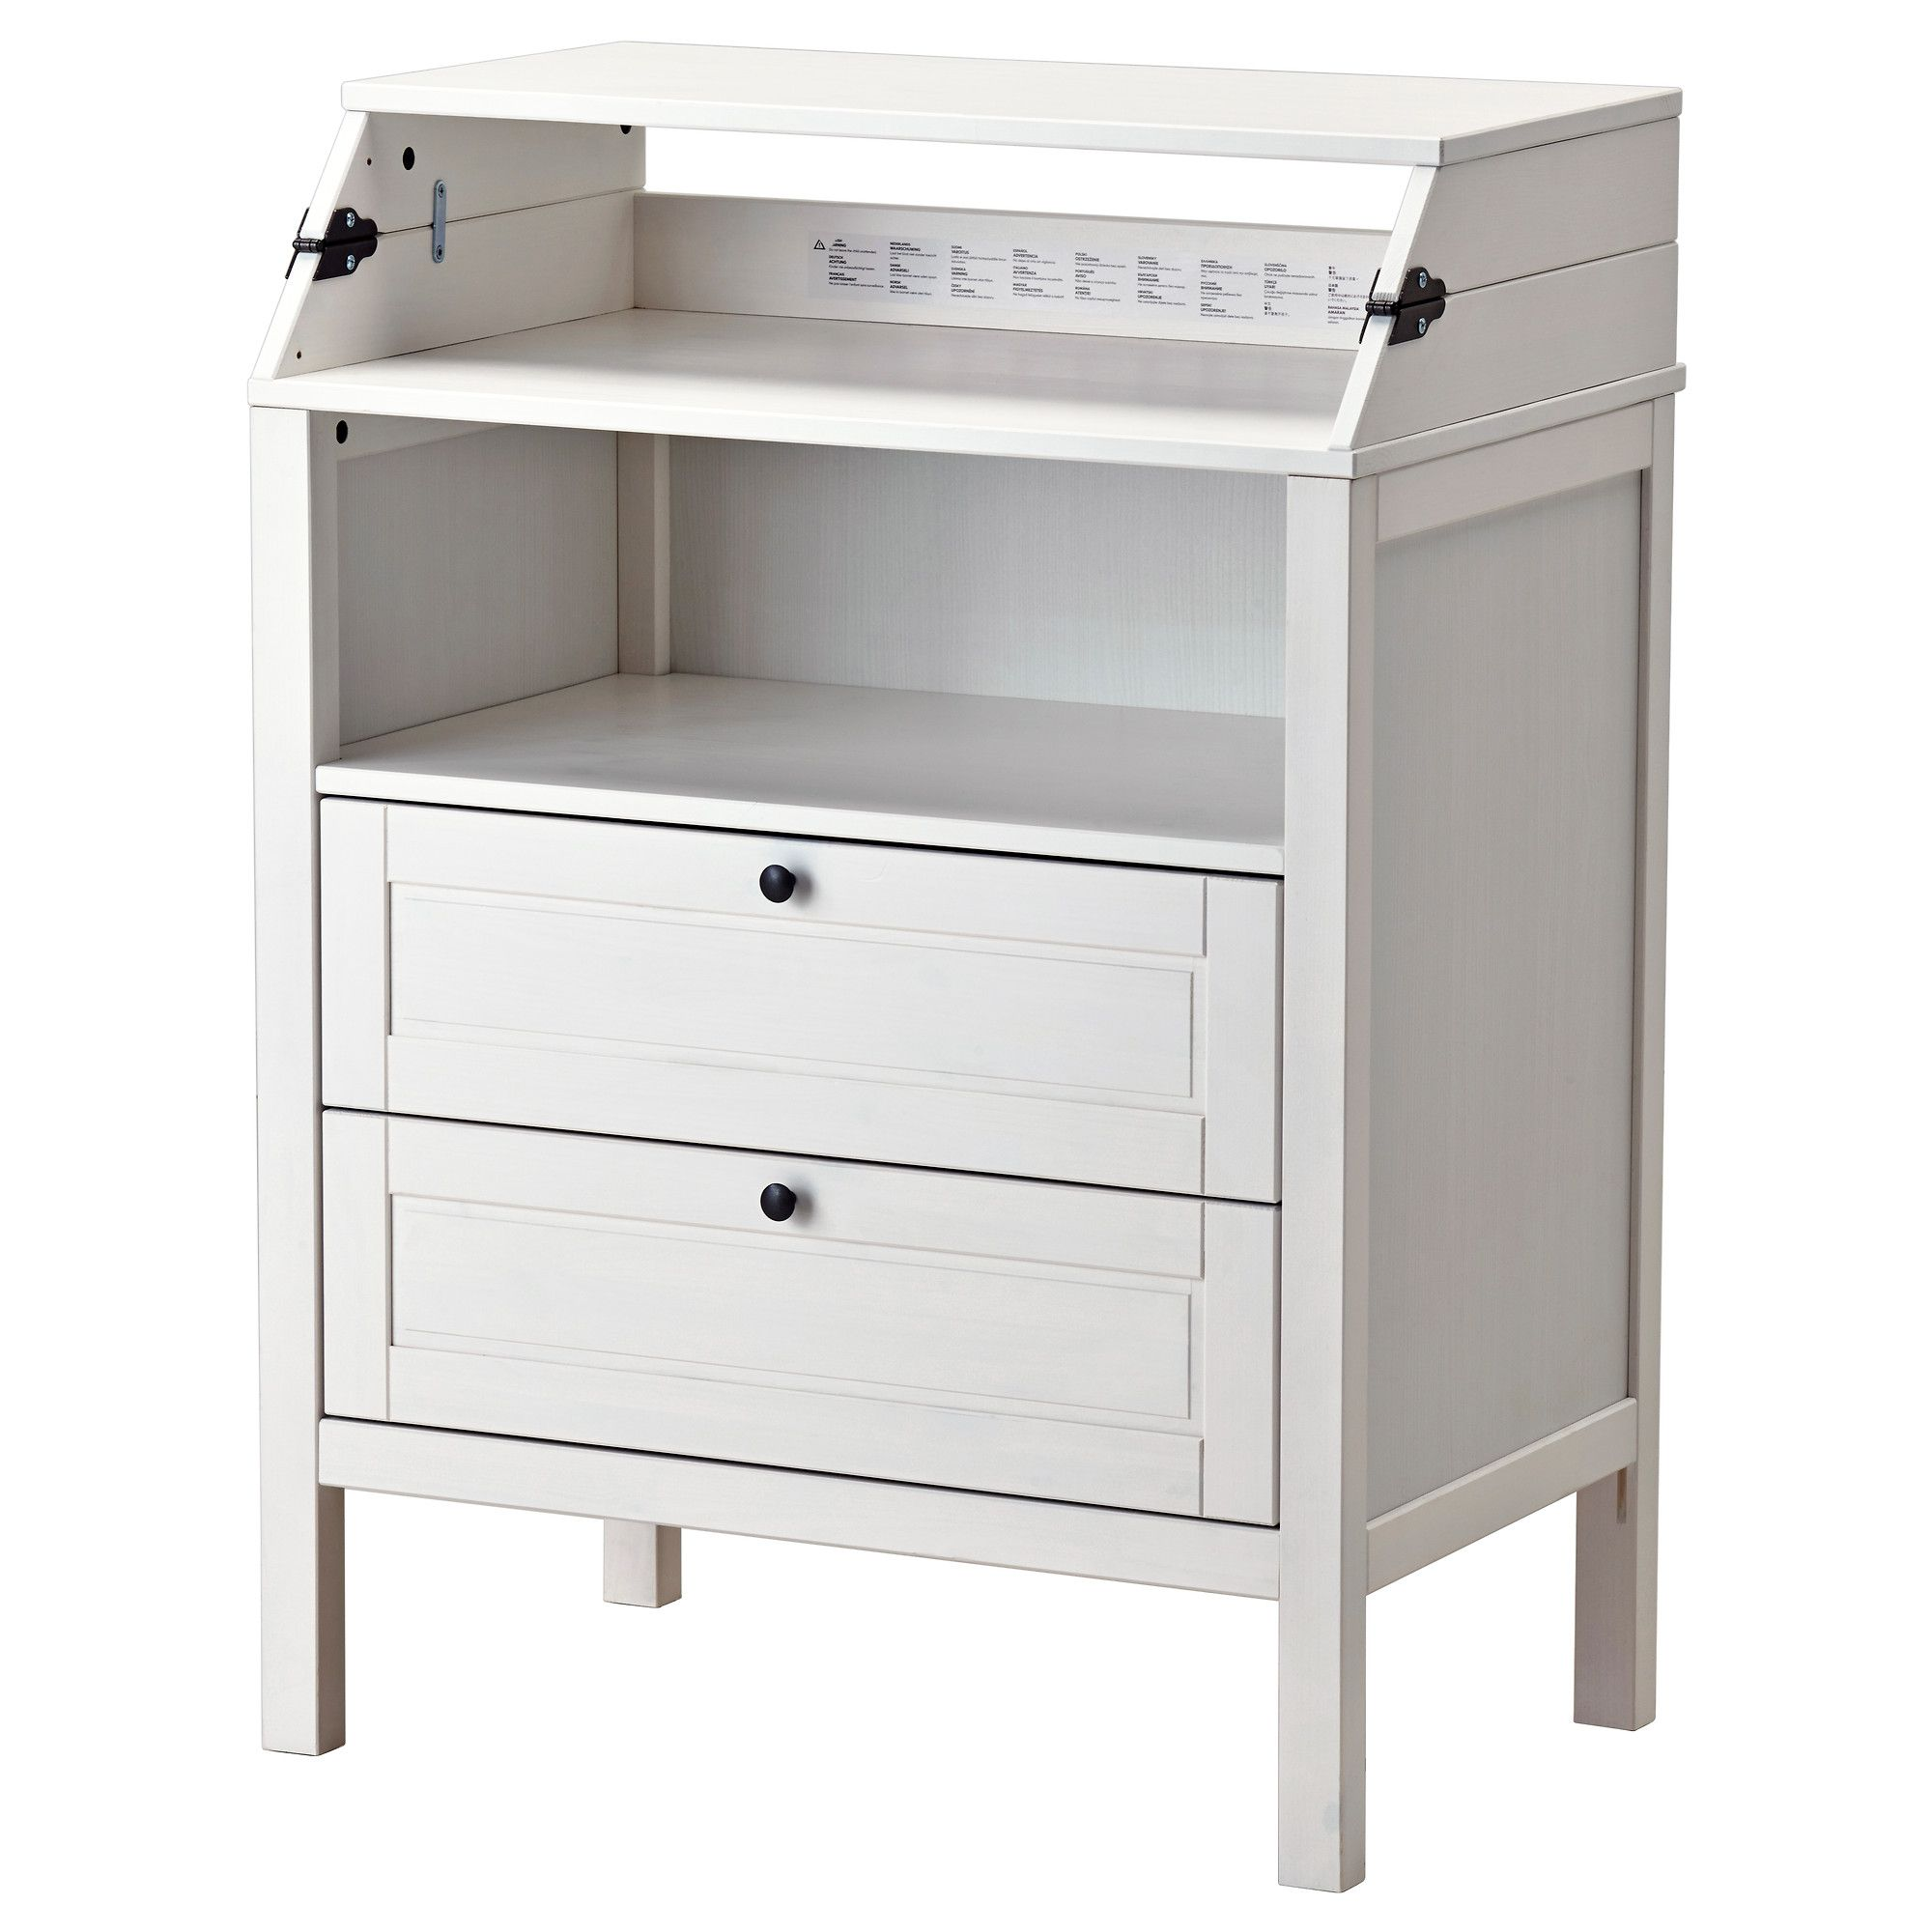 Changing Table Chest Of Drawers Sundvik Changing Table Chest Of Drawers Ikea Folds In And Out